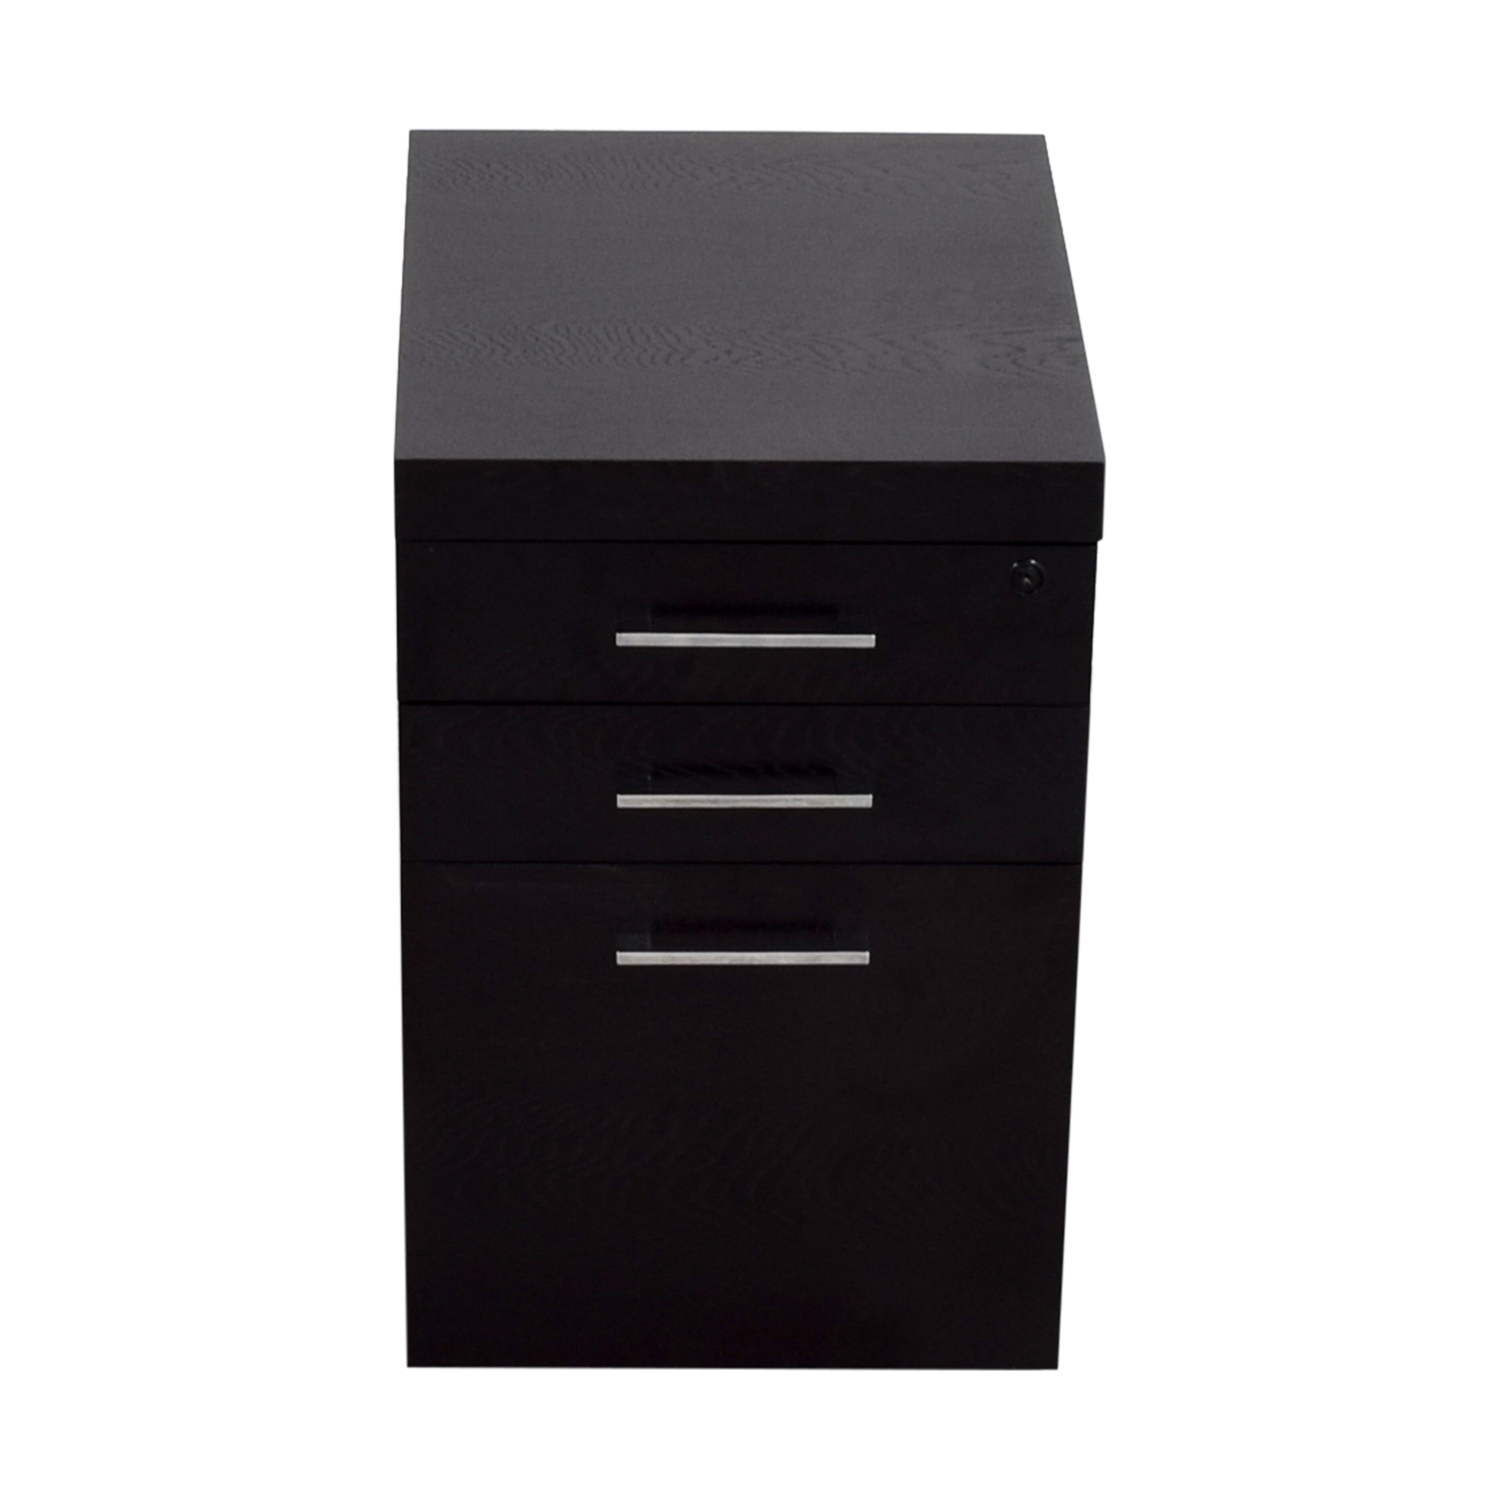 Macys Stockholm Three-Drawer Filing Cabinet / Storage